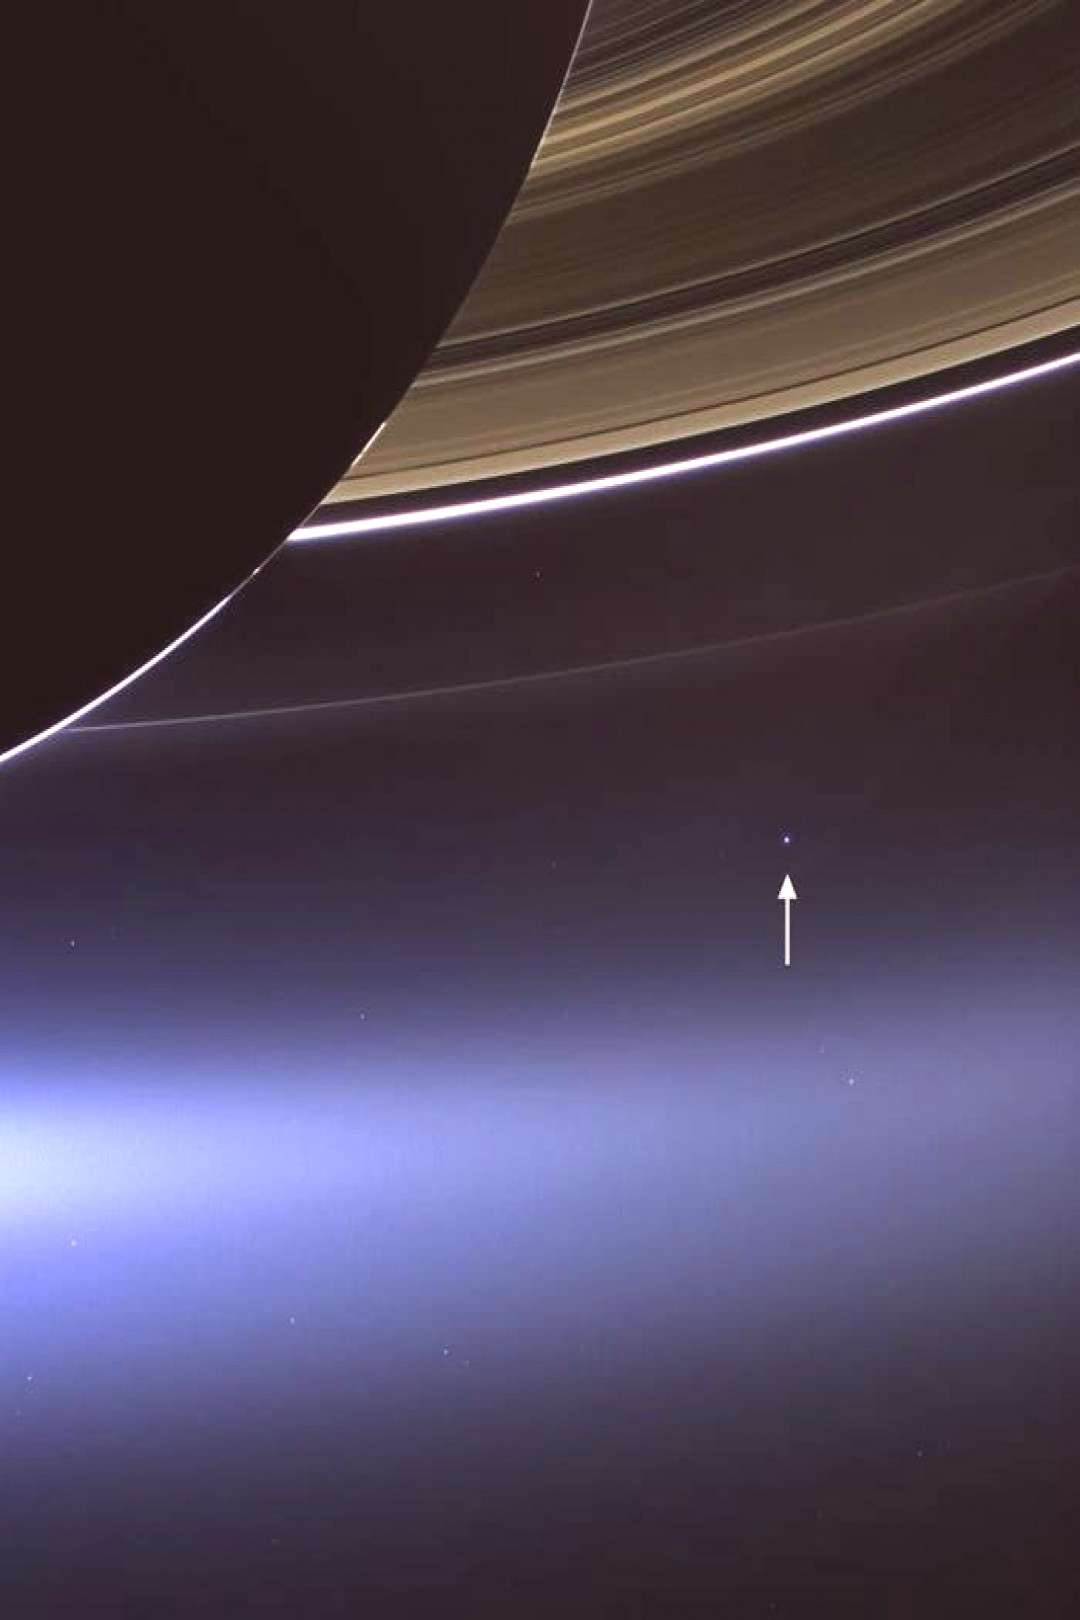 On July 19, NASAs Cassini spacecraft captured a rare image of Saturns rings and our planet Earth